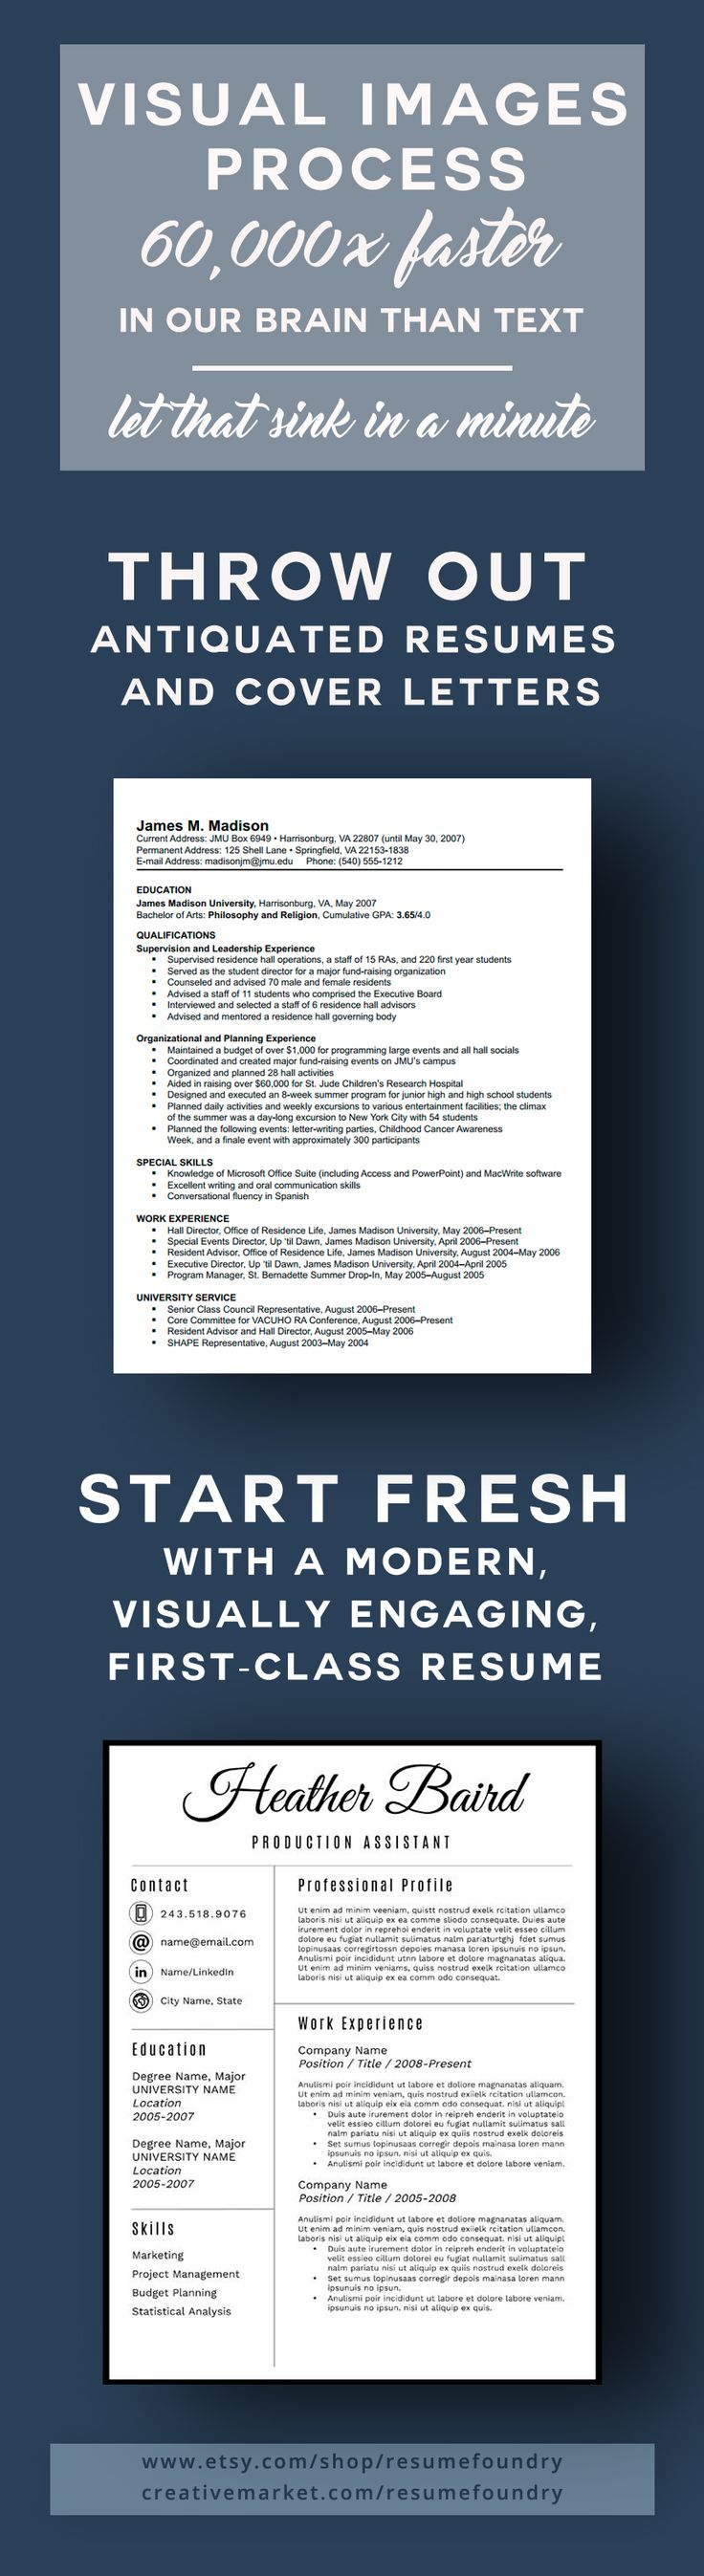 Functional Resume Template Microsoft%0A Take advantage of the fact that visual images process faster than text   make your resume visually engaging